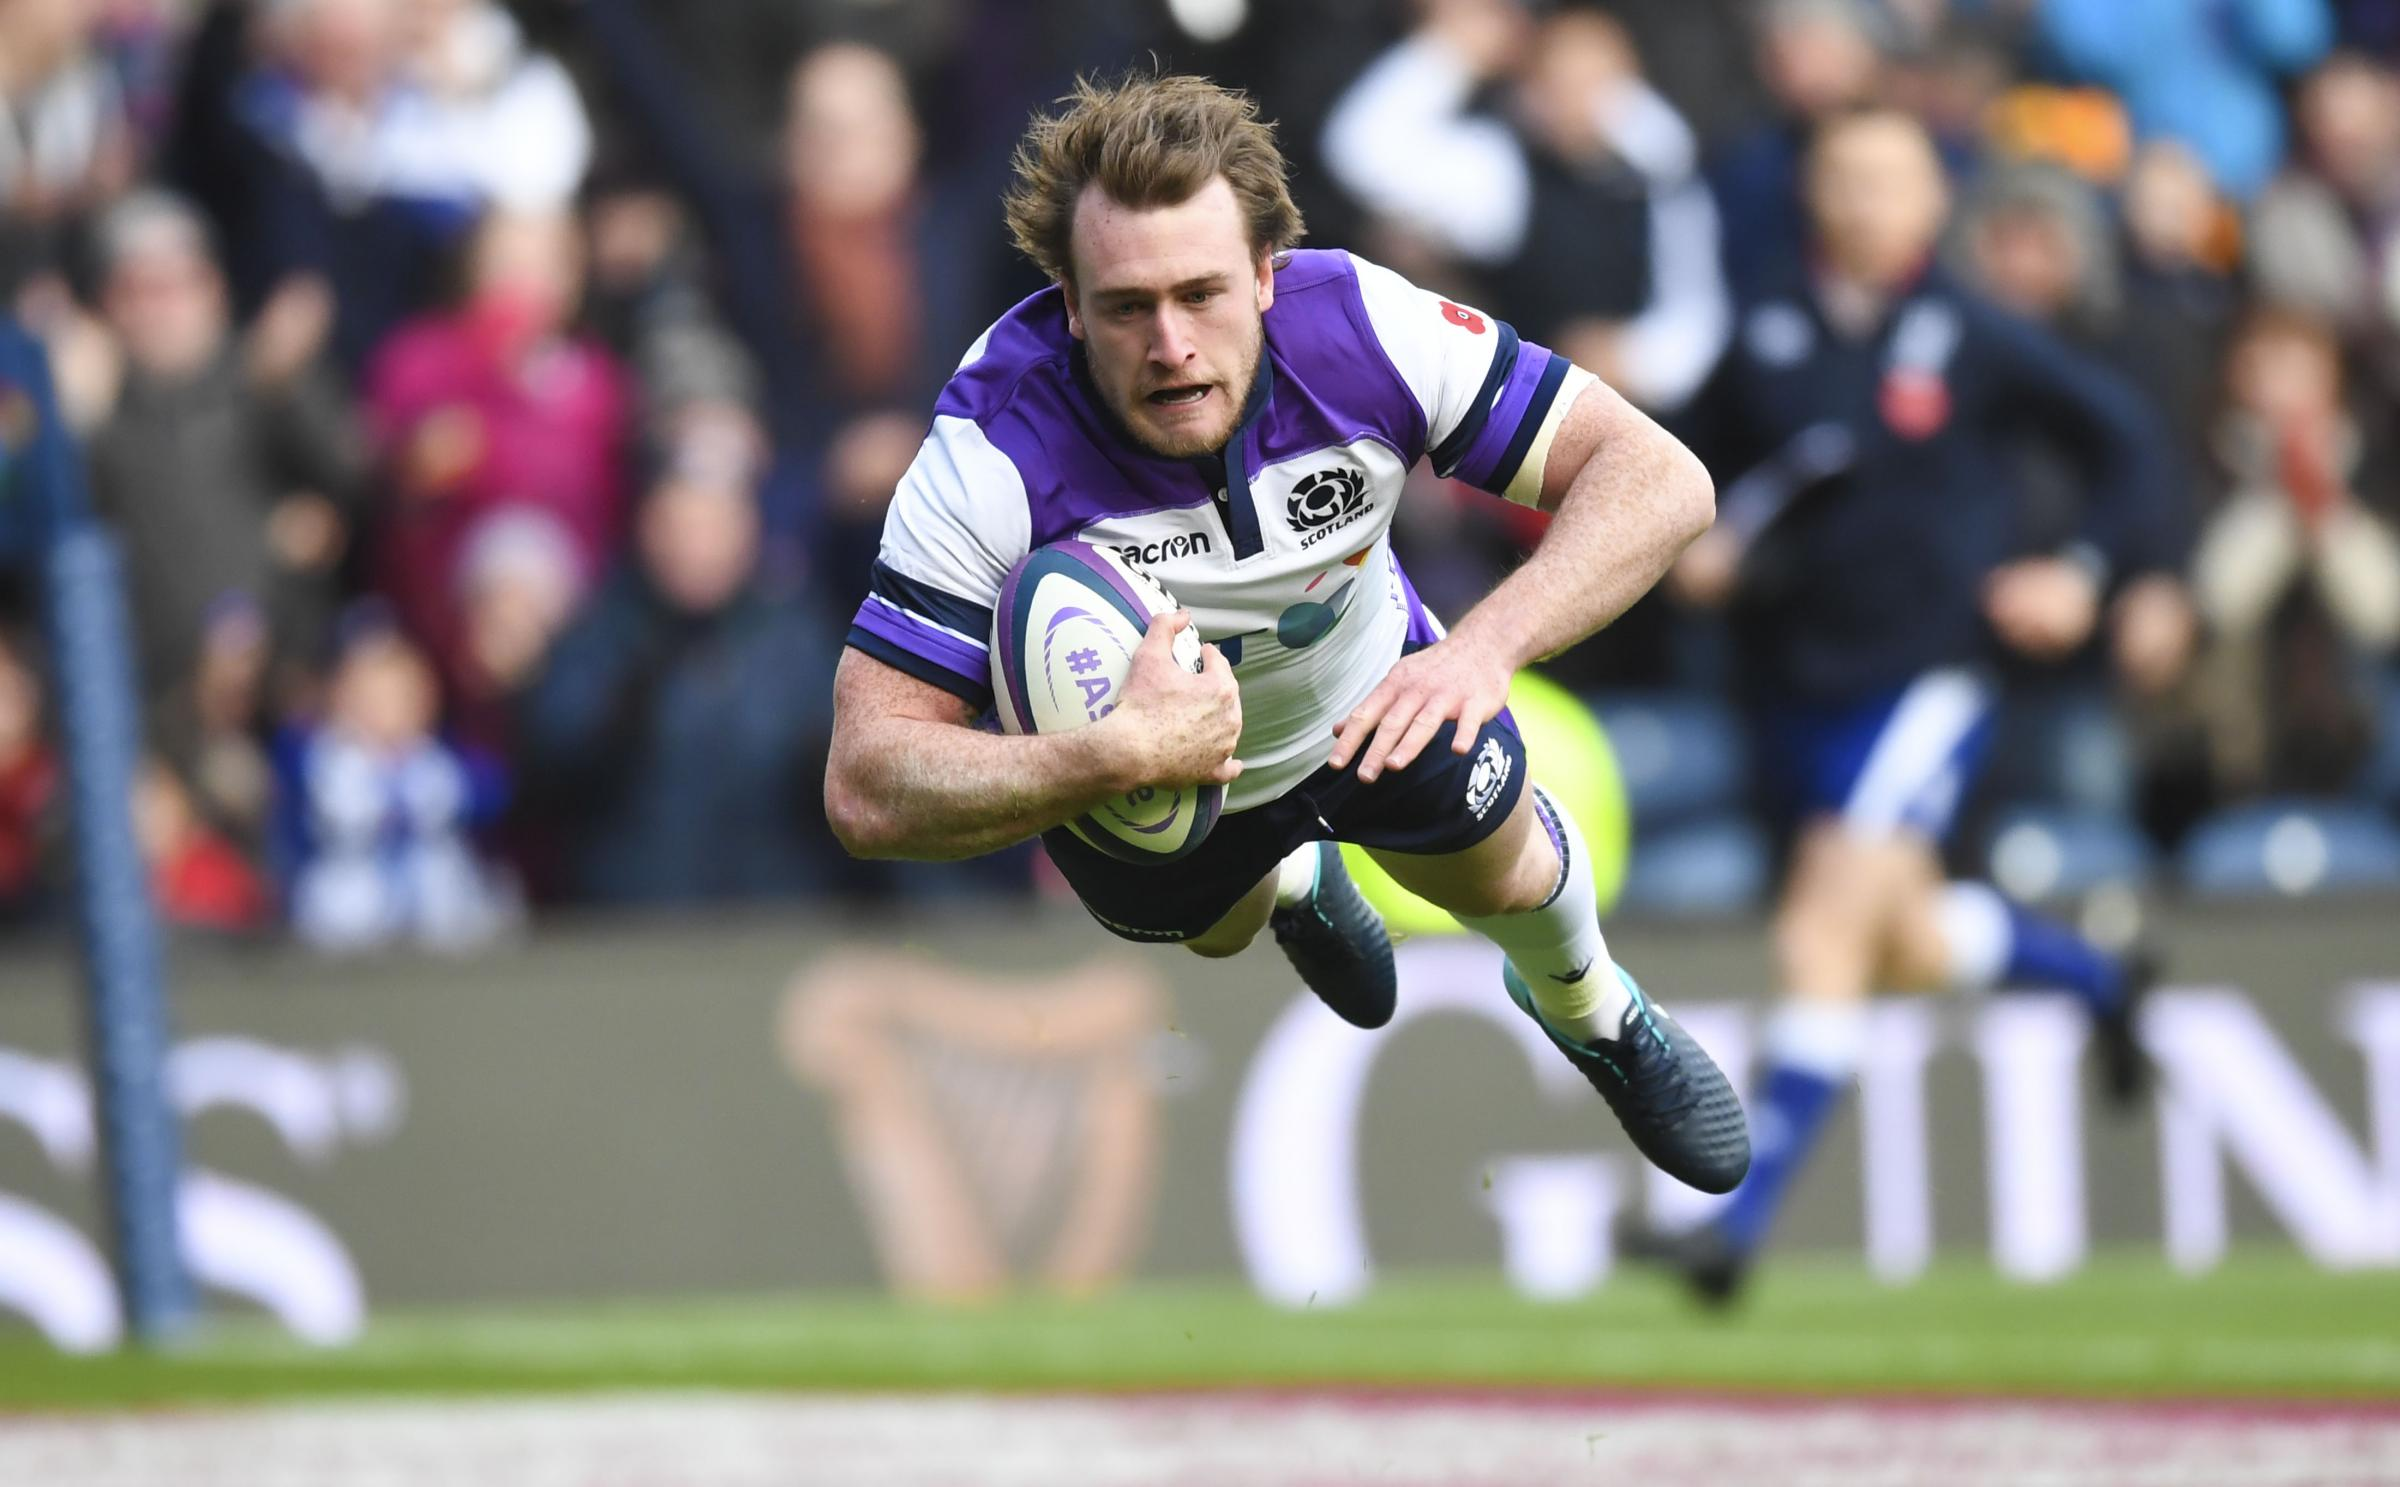 Stuart Hogg flies through the air for the 17th try of his Scotland career